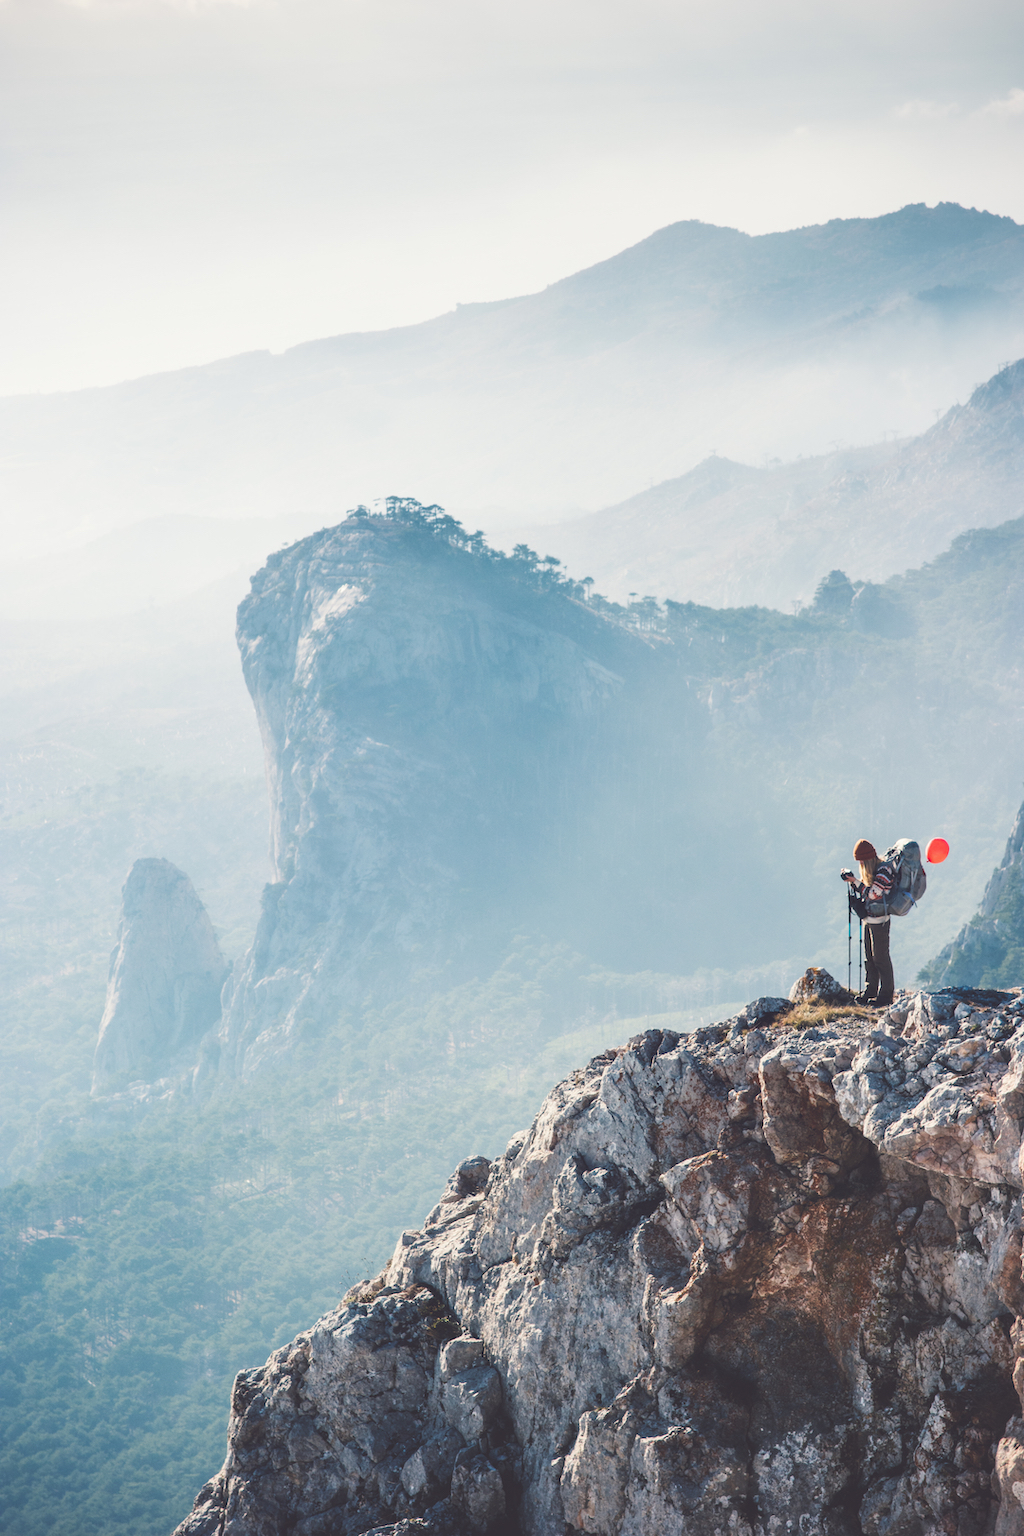 Travel Images - Girl on Mountain